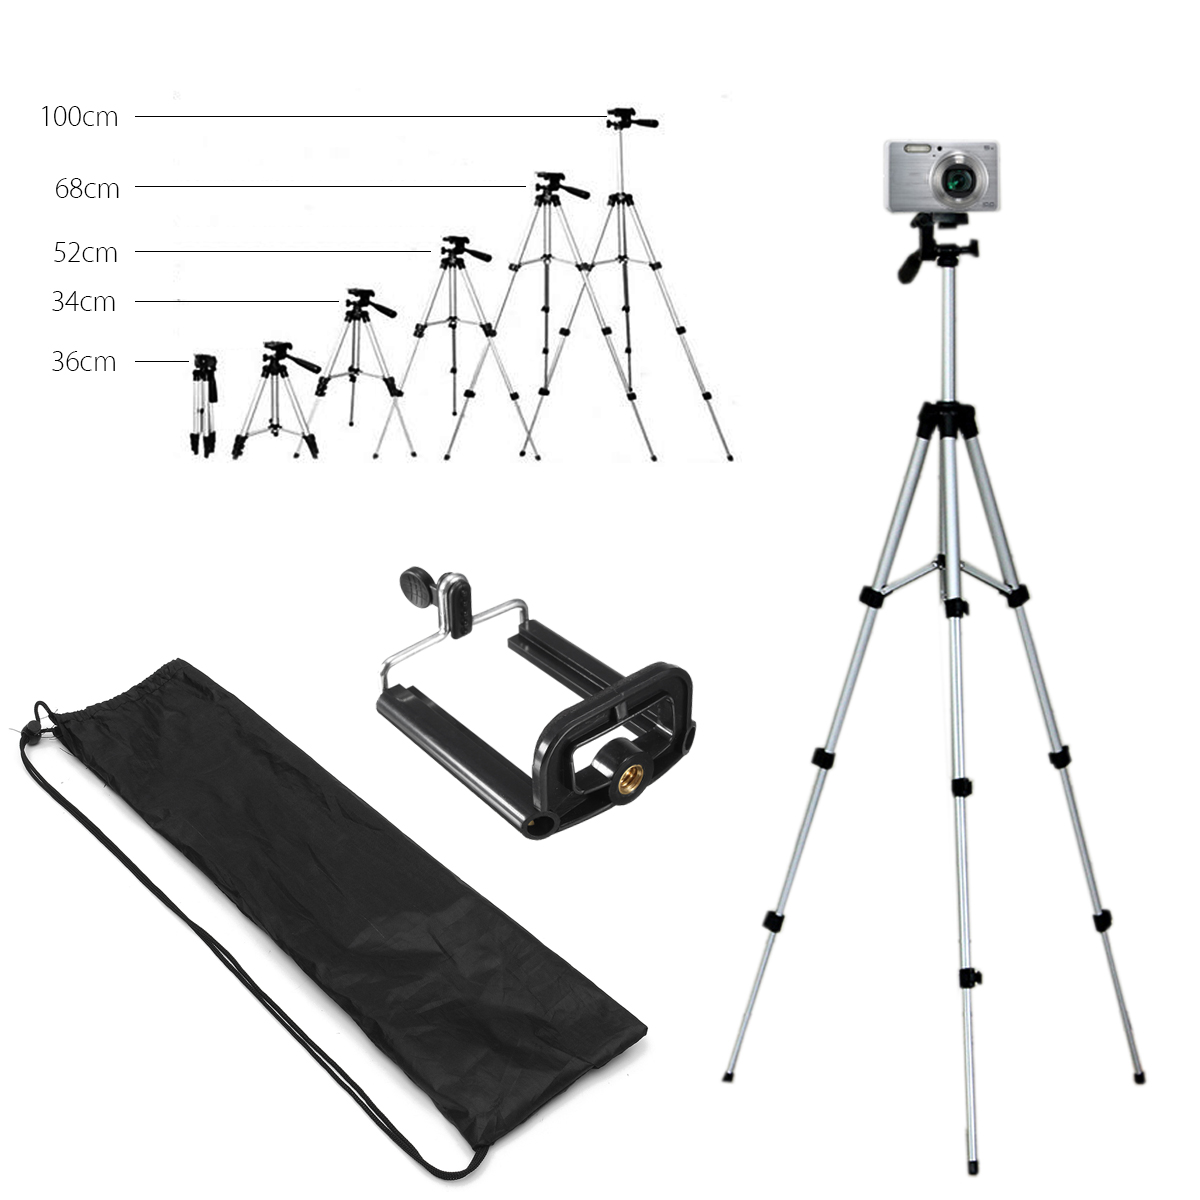 Extendable 36-100cm Universal Adjustable Tripod Stand Mount Holder Clip Camera Phone Holder Bracket For Cell Phone CameraExtendable 36-100cm Universal Adjustable Tripod Stand Mount Holder Clip Camera Phone Holder Bracket For Cell Phone Camera